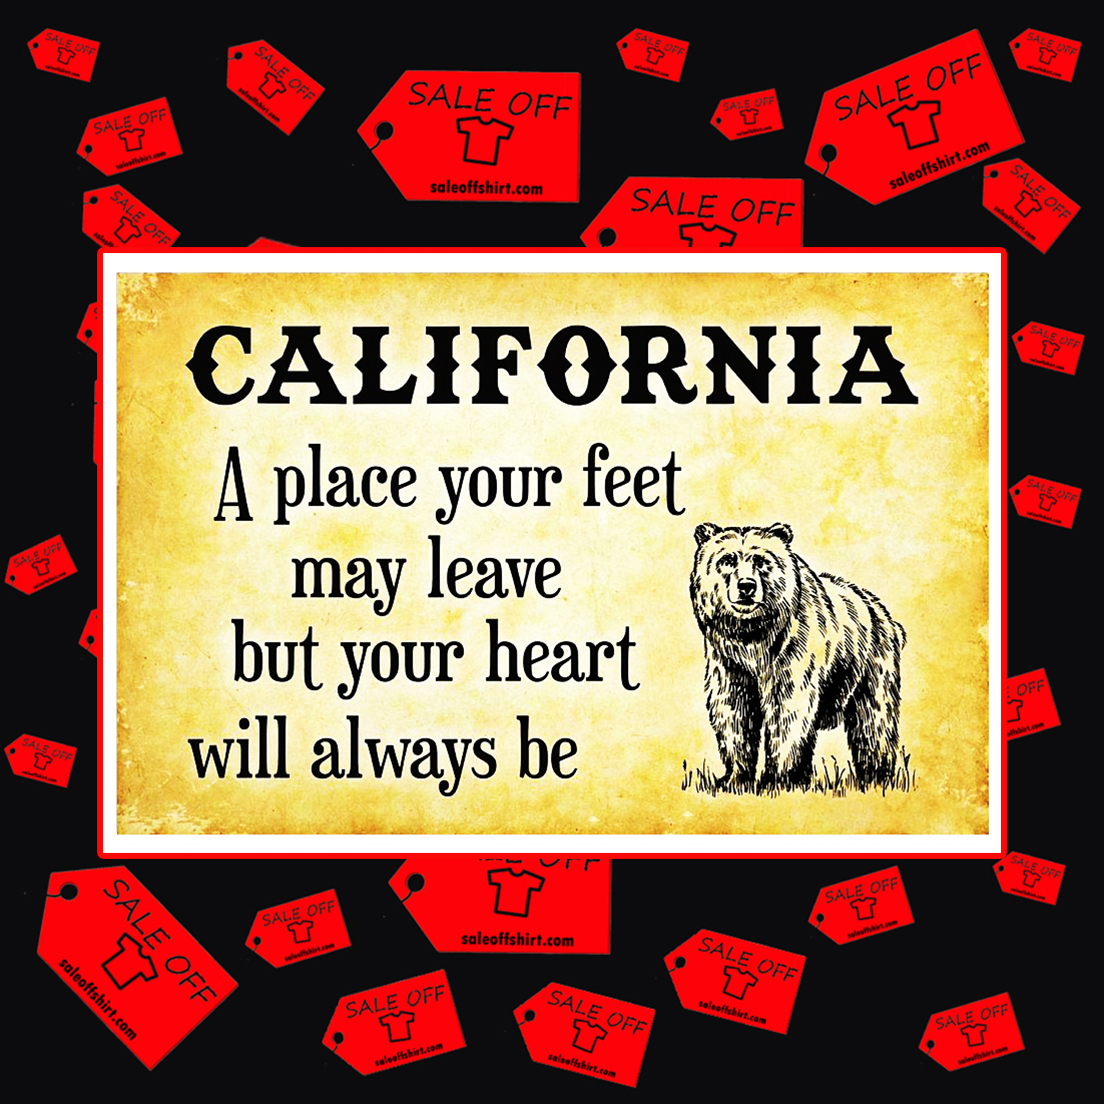 California a place your feet may leave but your heart will always be poster 17x11